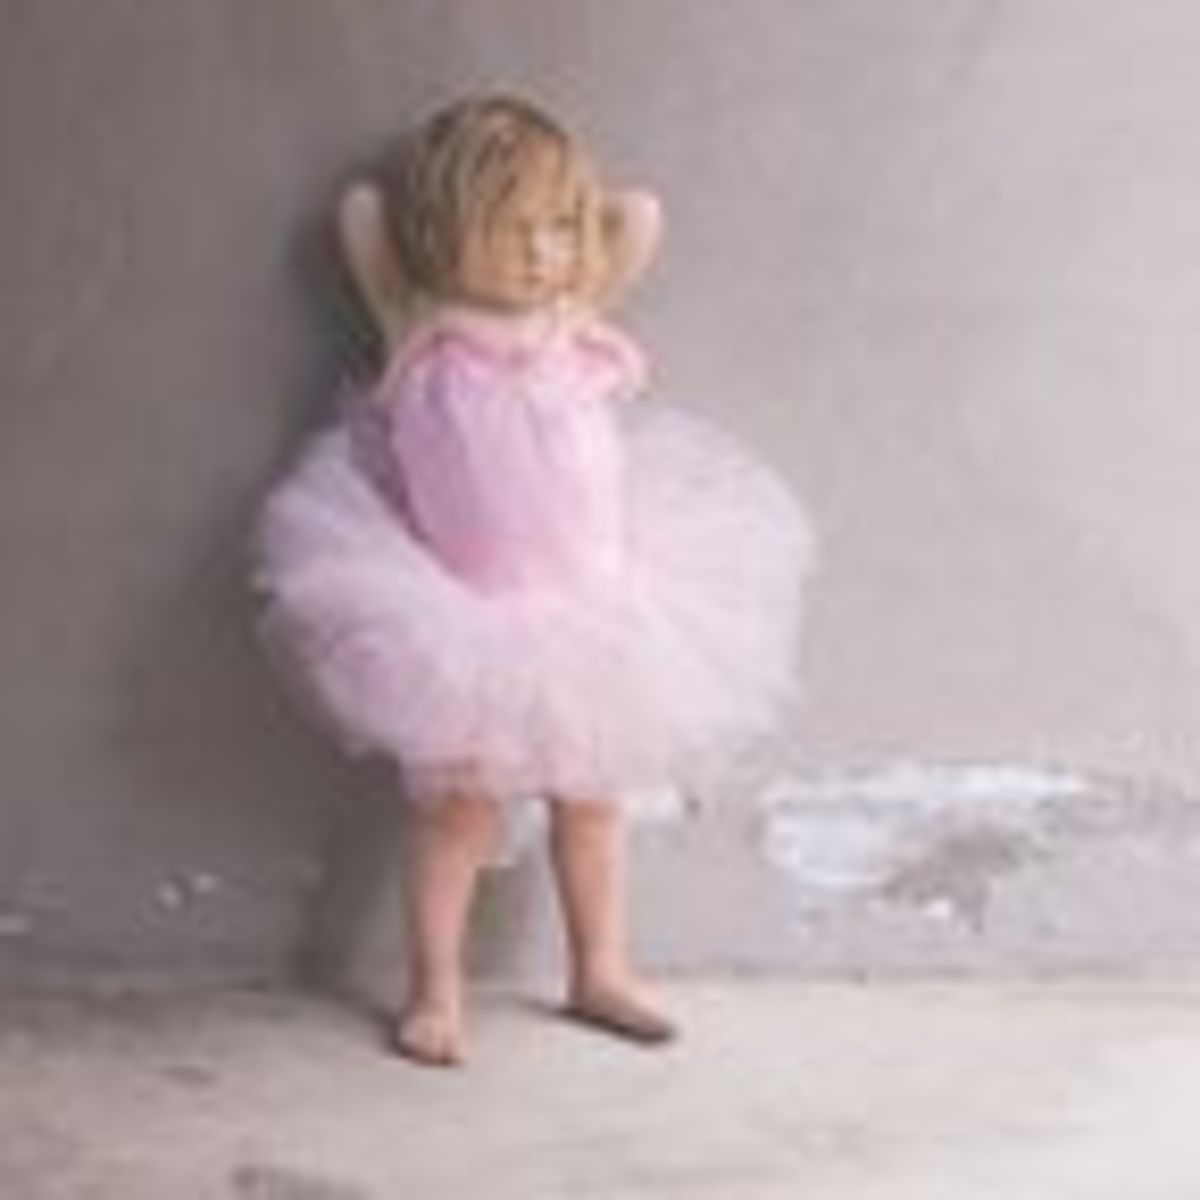 How Narcissistic Parents Scapegoat Their Children | Psychology Today